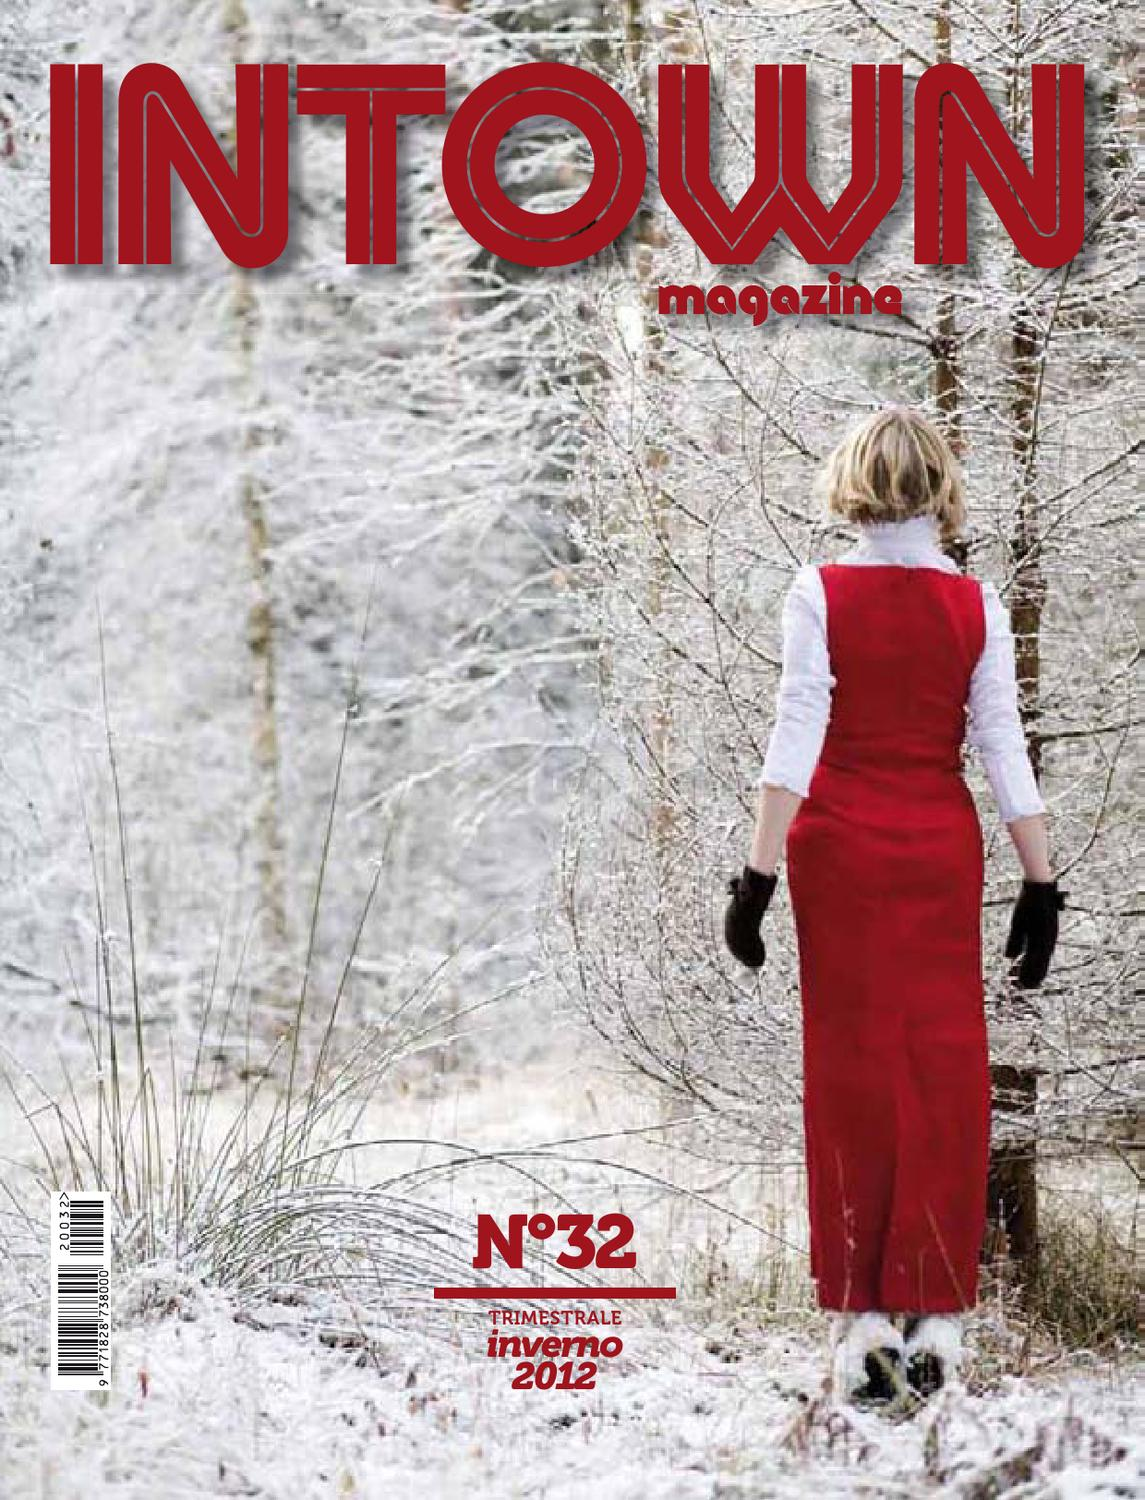 Winter Intown 2012 32 Issuu Milano Intown By YfvygbI67